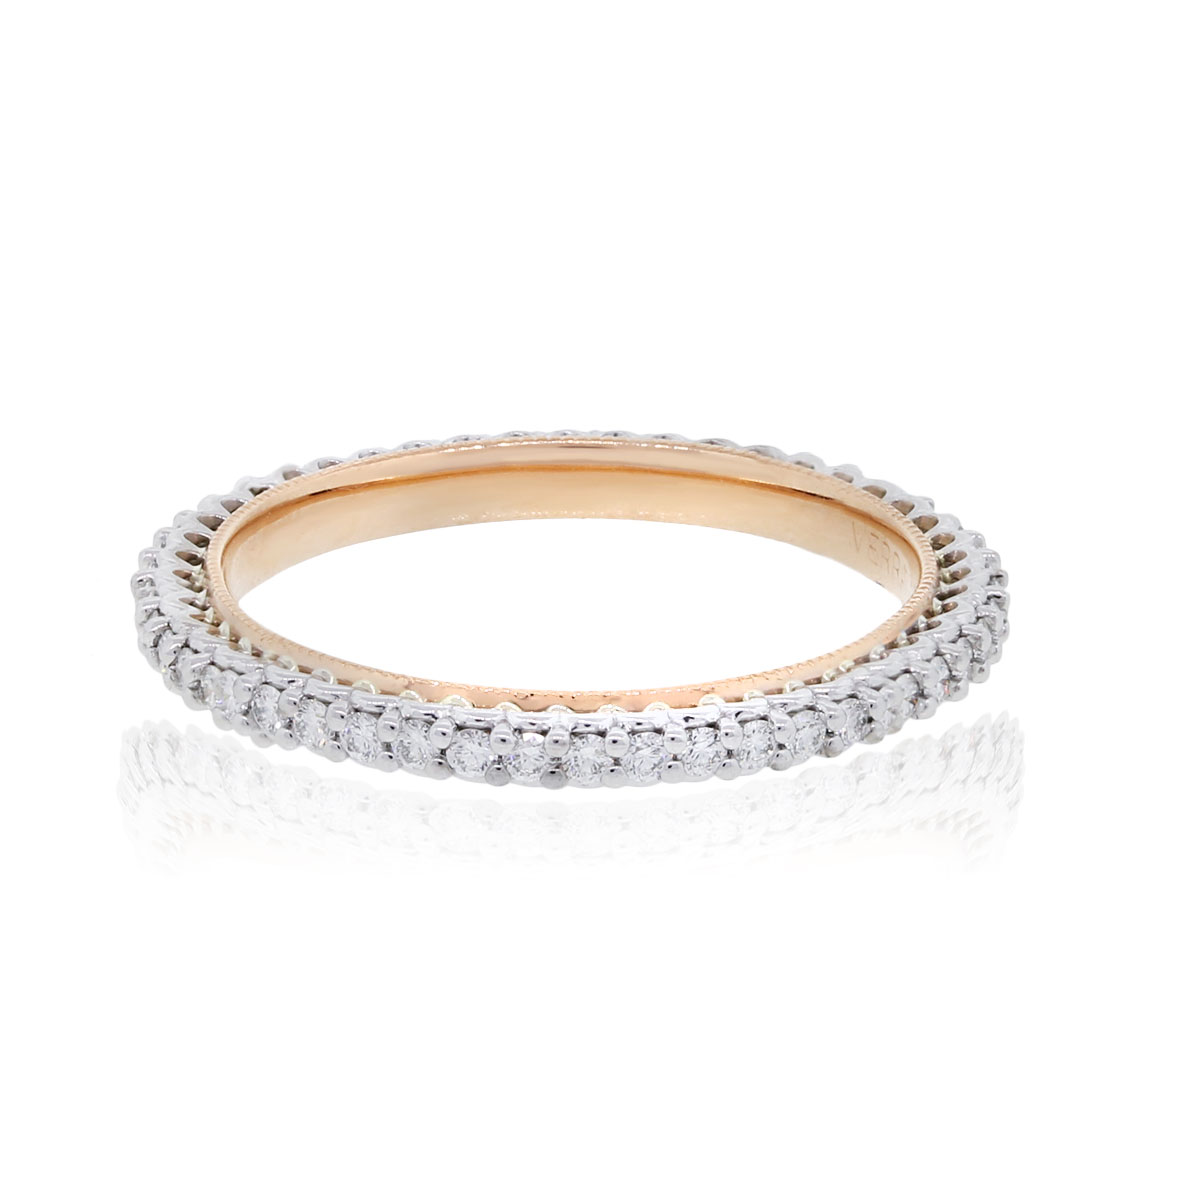 "Image of ""Verragio 18K White and Rose Gold 0.45ct Band Ring Size 8"""